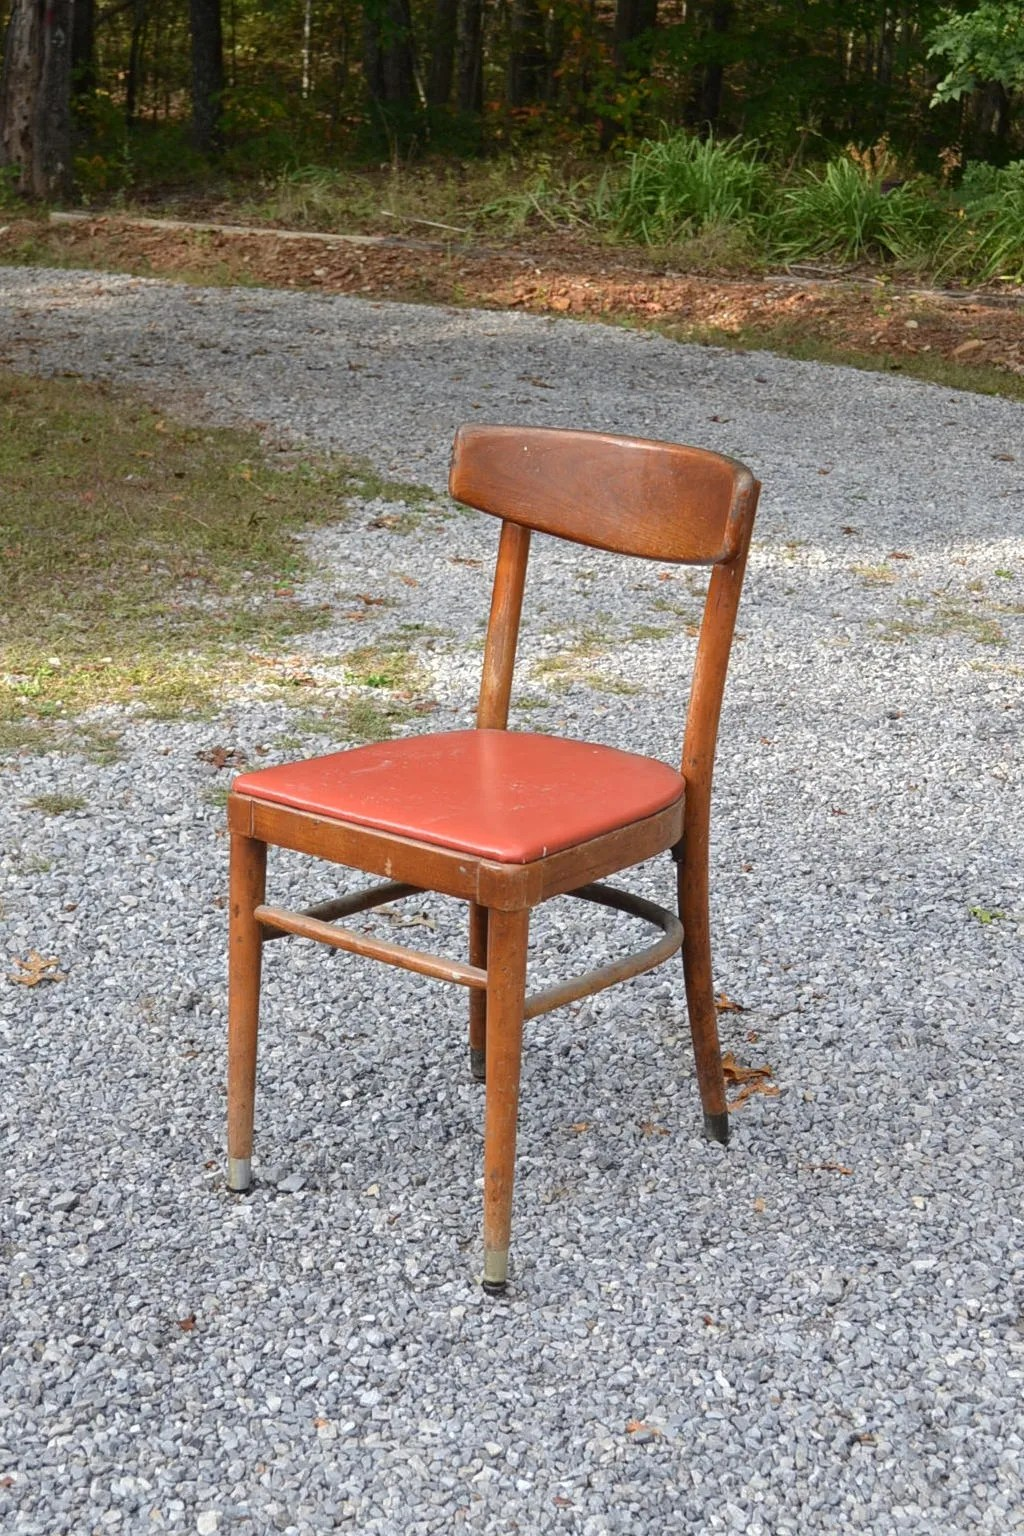 vintage bentwood chairs dark wood dining thonet chair upholstered seat desk etsy image 0